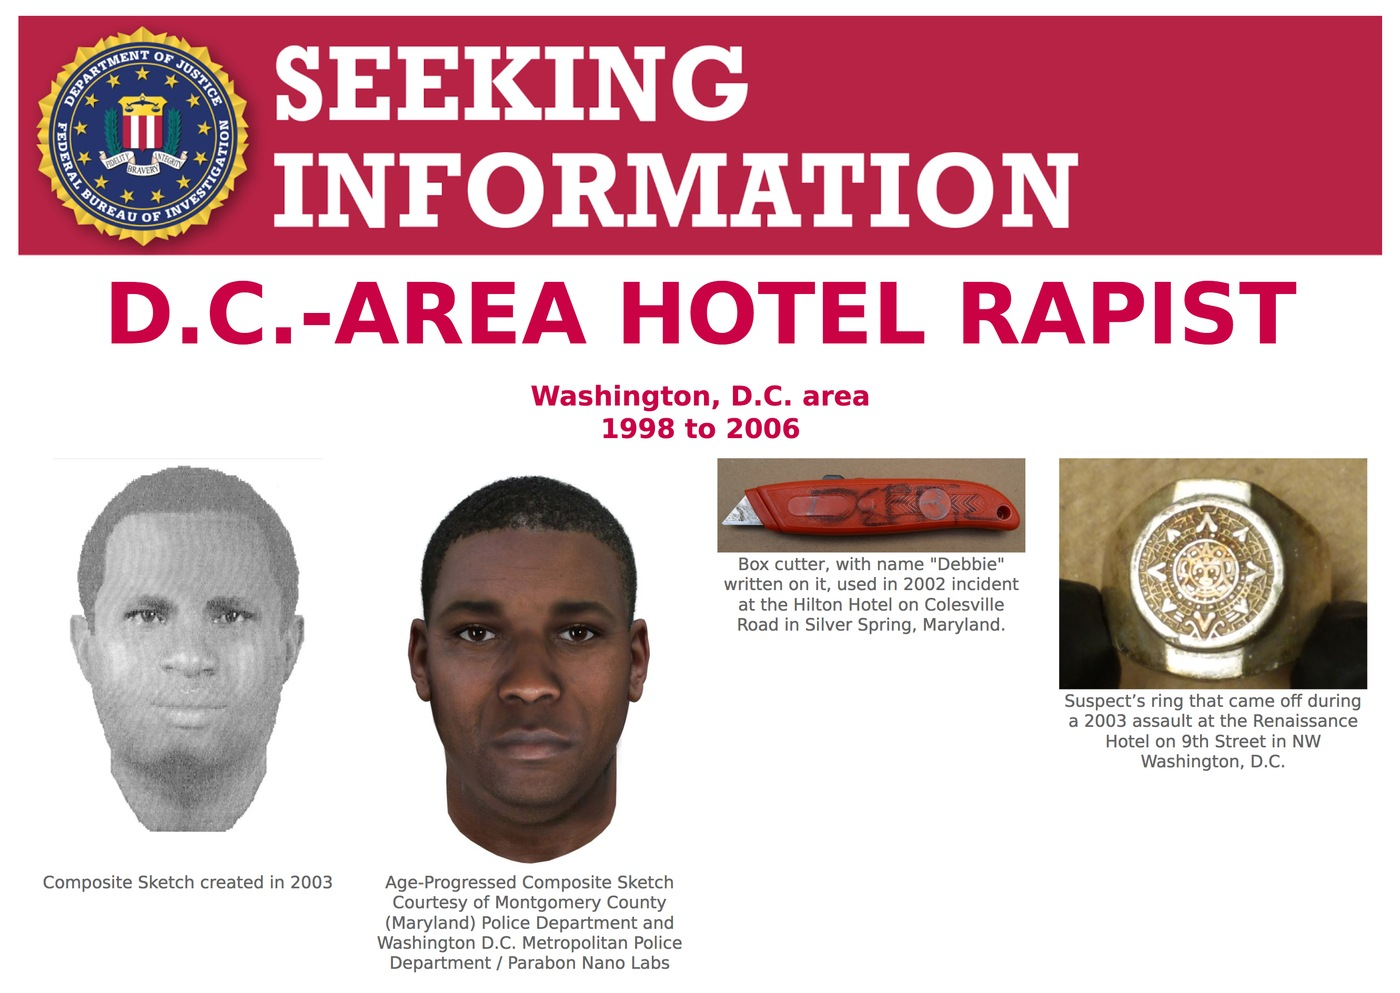 Screenshot of top portion of Seeking Information poster for the D.C.-Area Hotel Rapist.